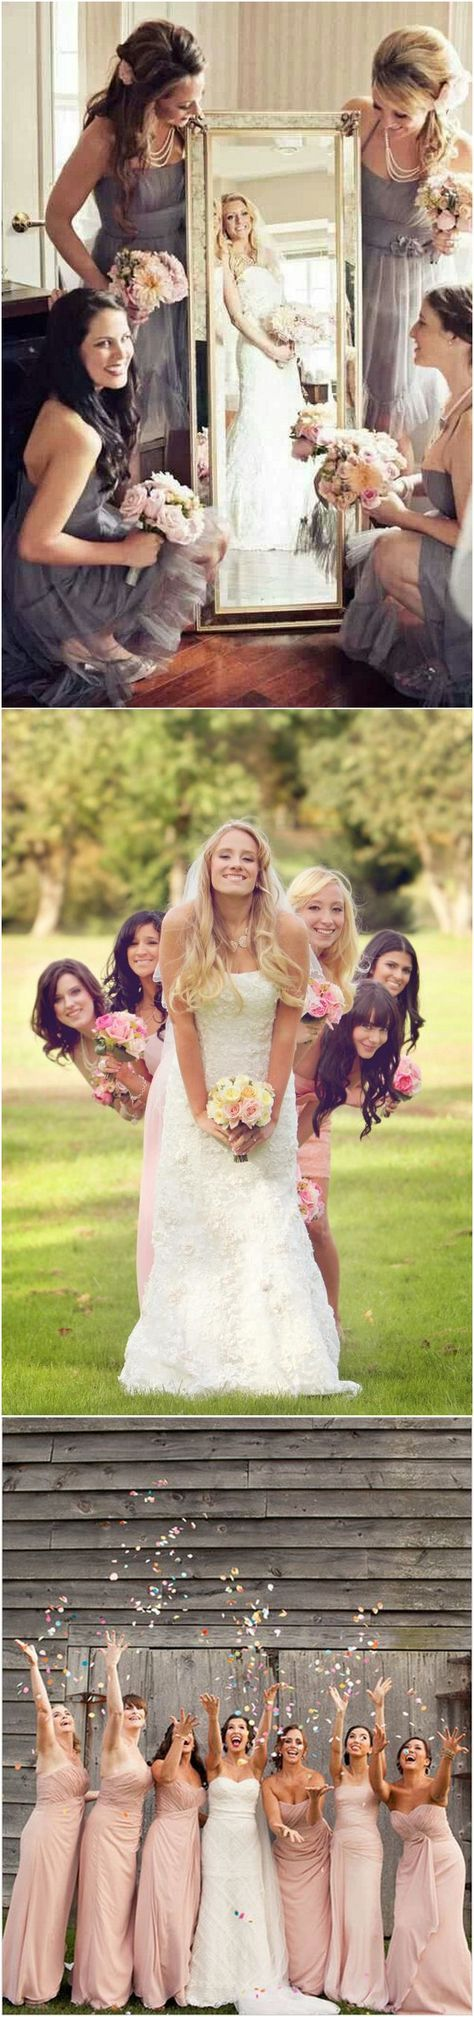 cool wedding shot ideas%0A    Must Have Wedding Photo Ideas with Your Bridesmaids  Page   of